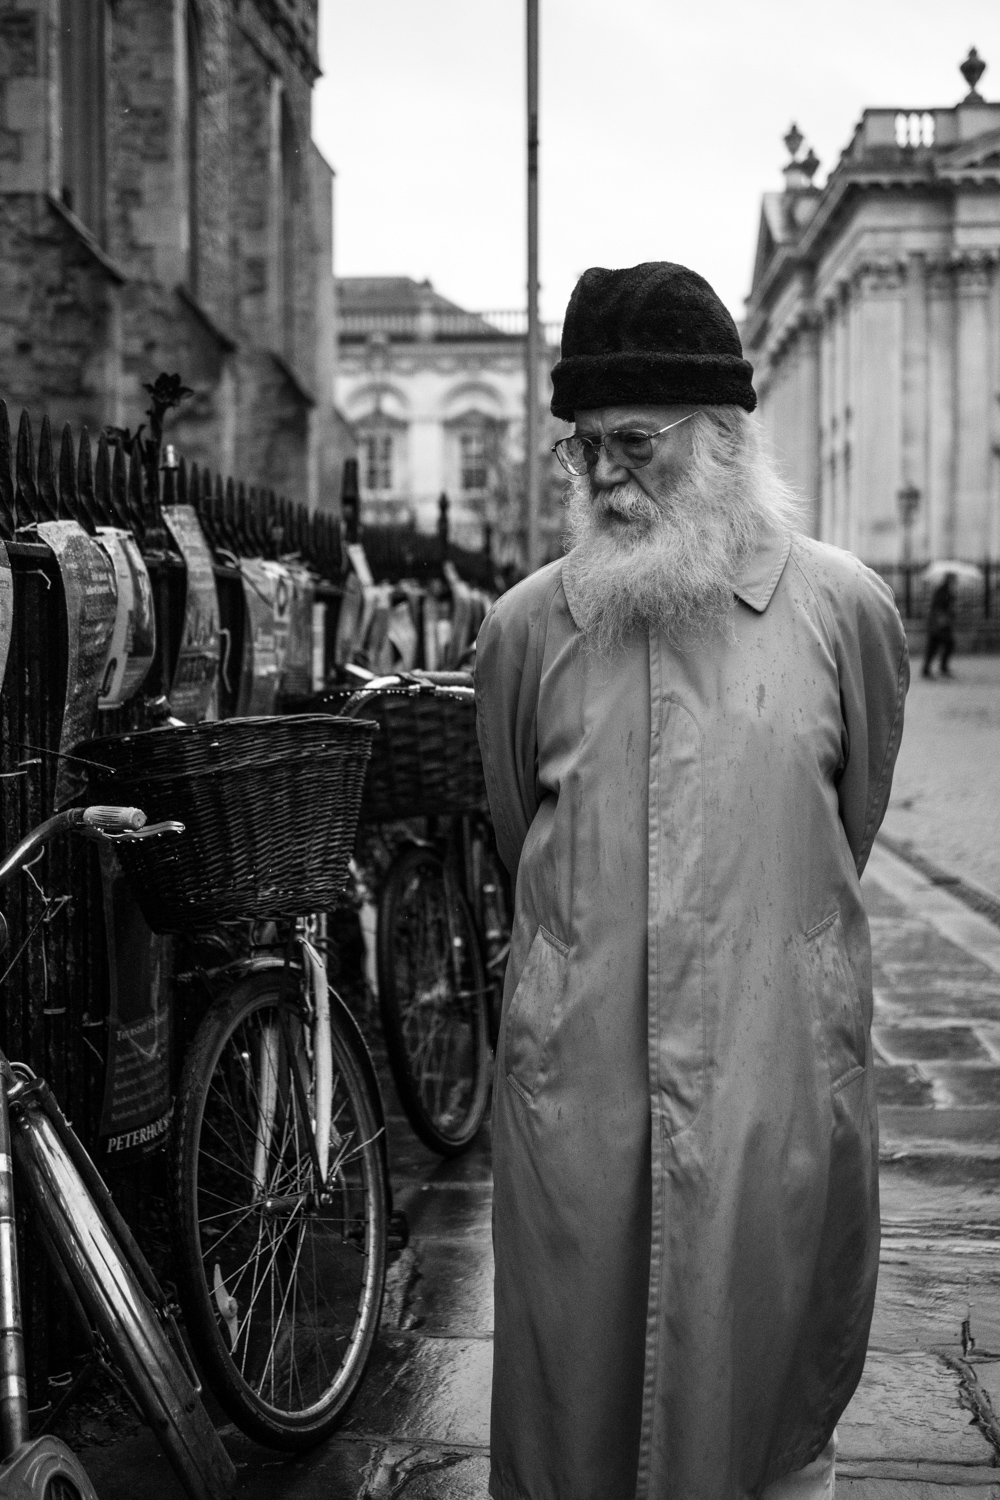 A candid moment caught on the streets of Cambridge